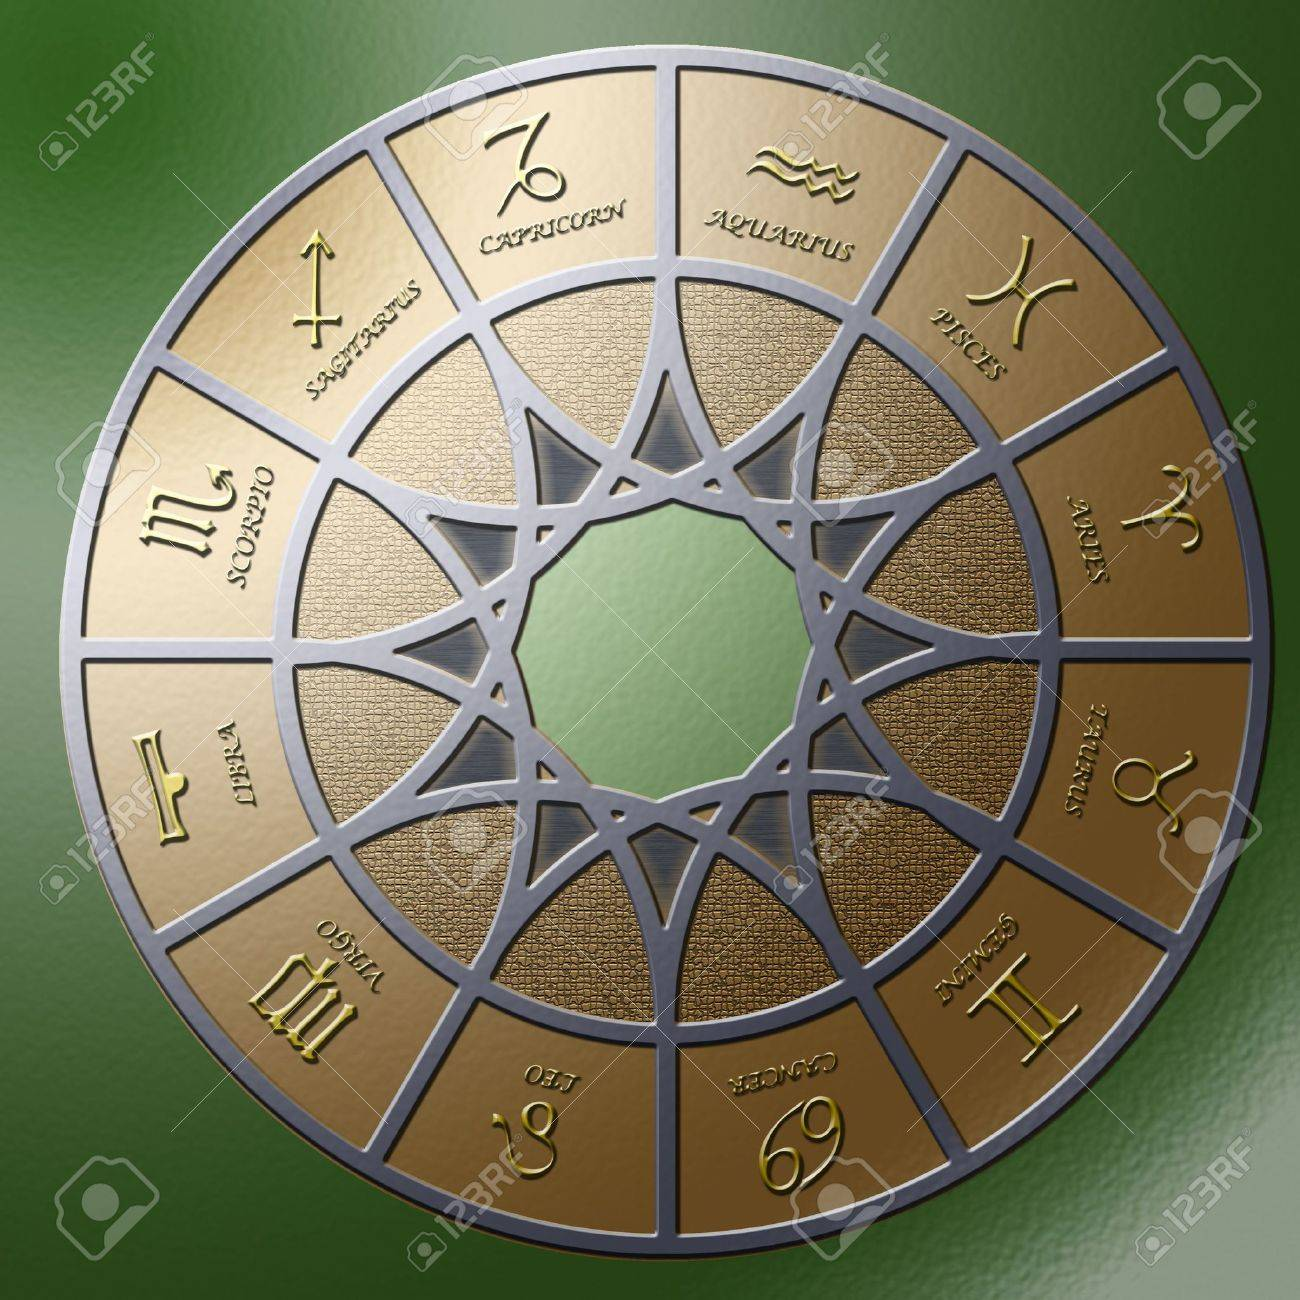 Illustration of a metal circle containing 12 embossed zodiac signs Stock Illustration - 3075313